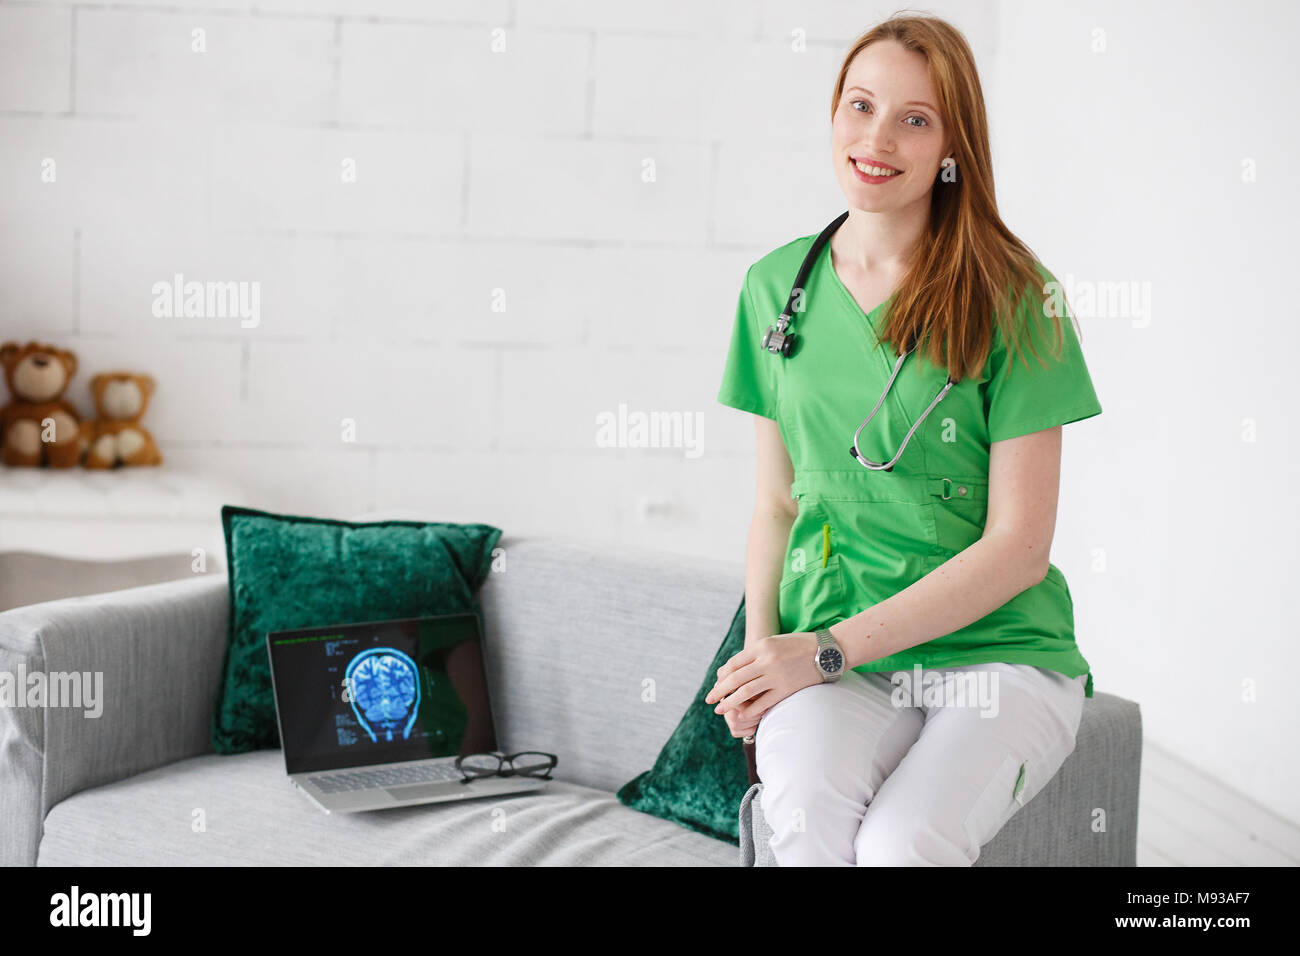 Portrait of friendly doctor neurologist in green uniform. Laptop with tomography images. Children's home doctor concept. - Stock Image